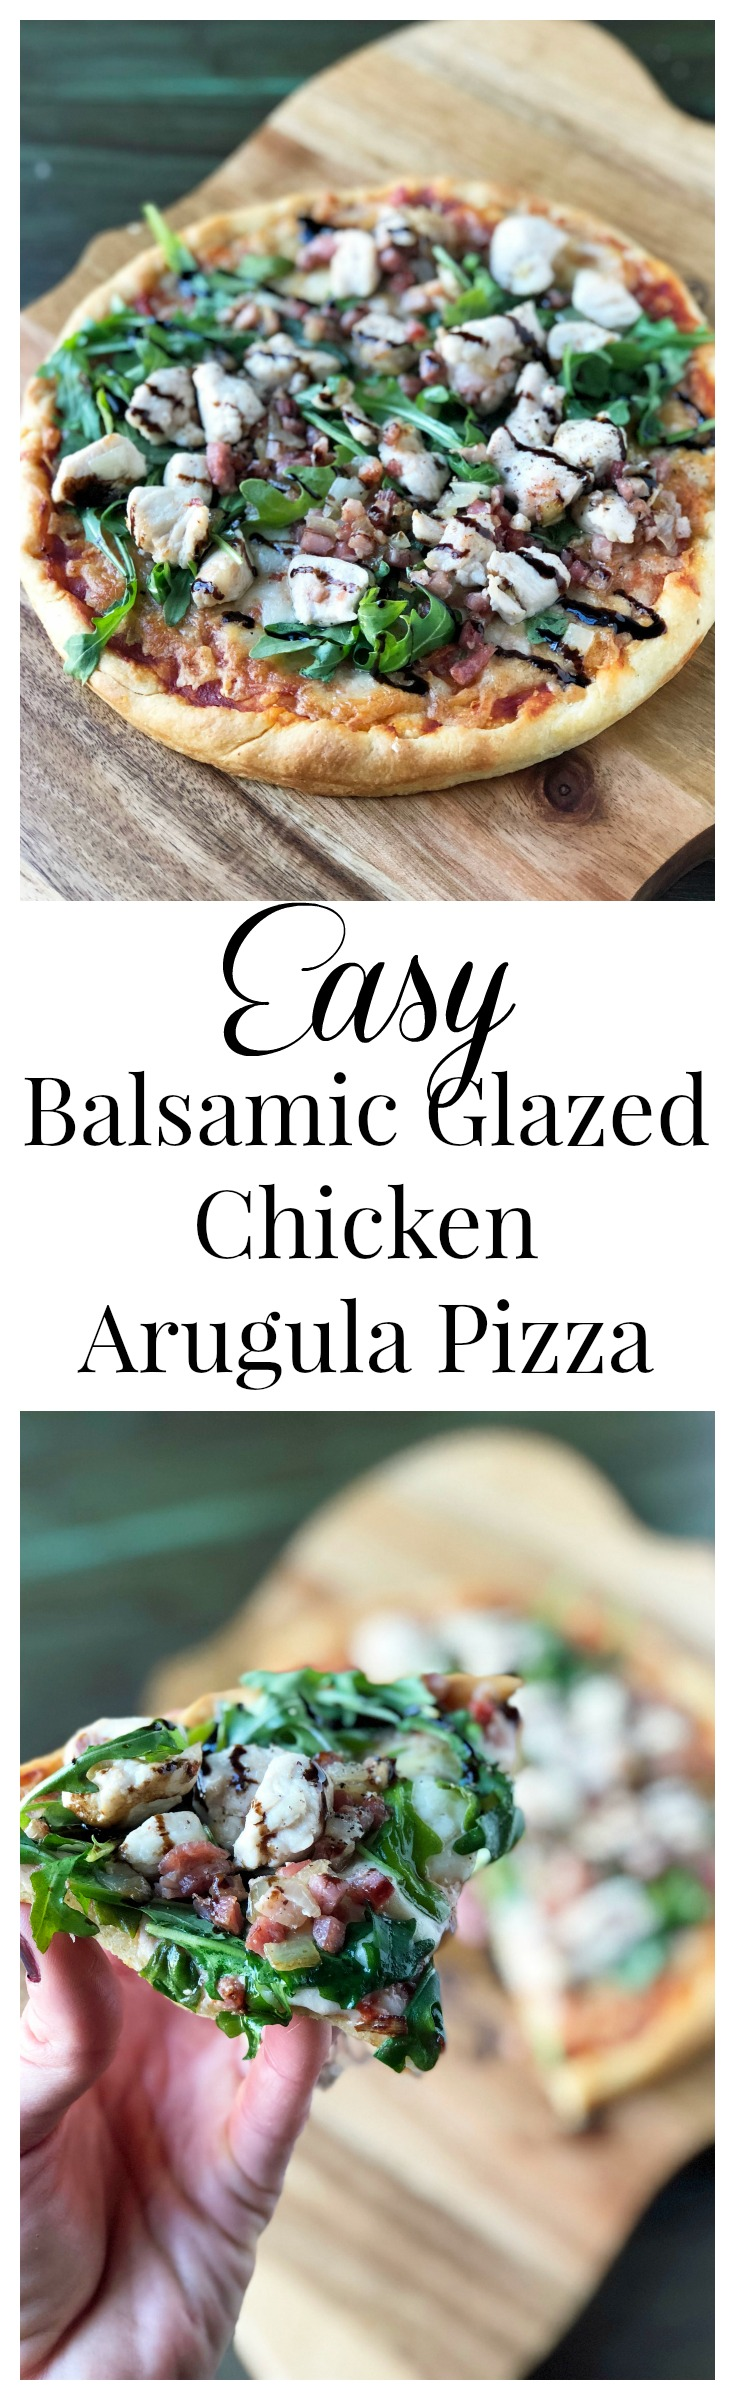 Easy Balsamic Glazed Chicken Arugula Pizza